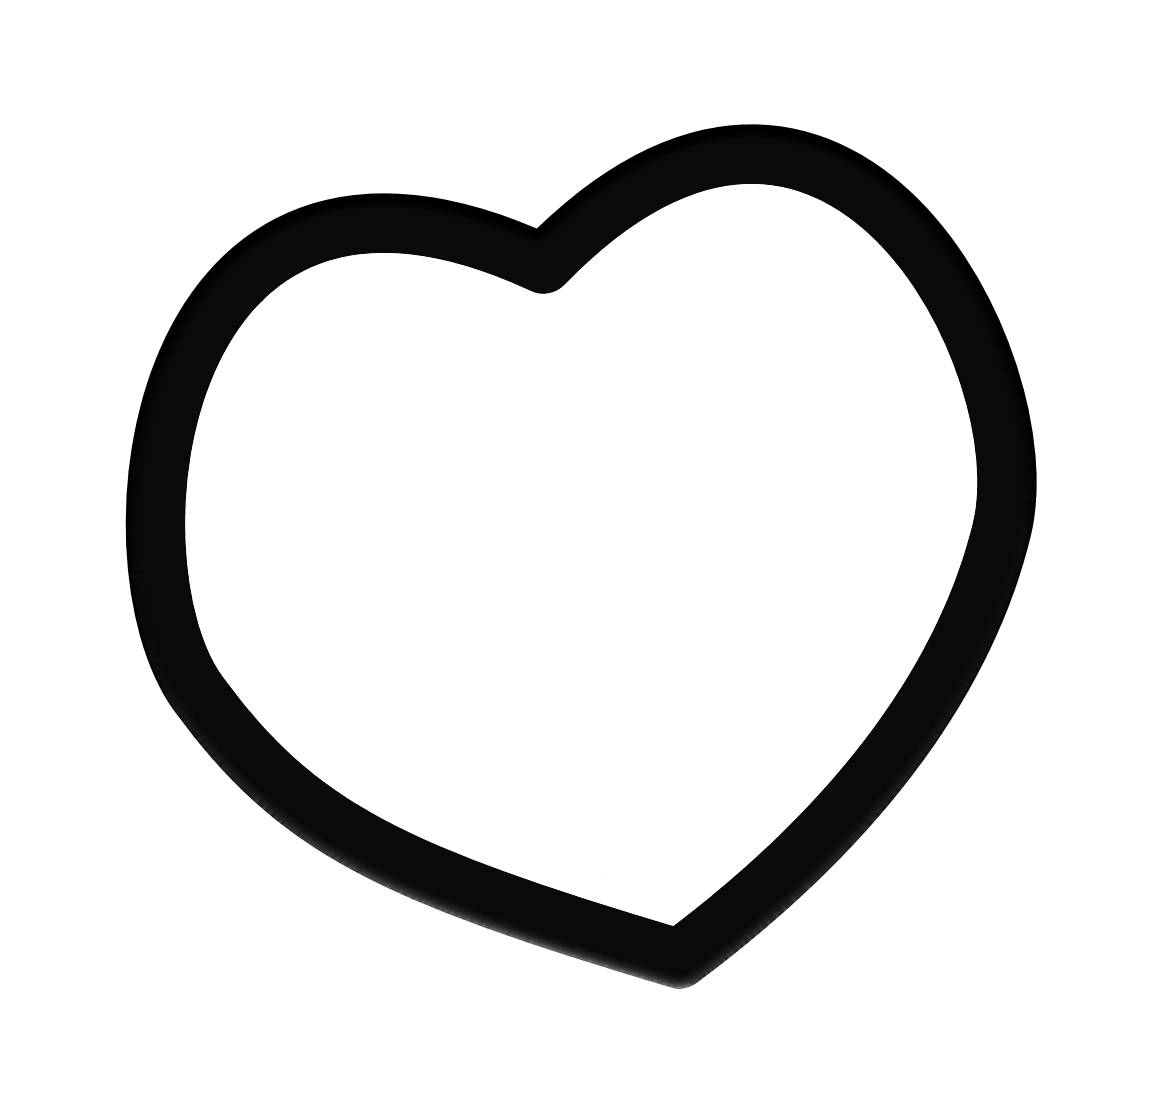 1150x1100 Heart Clipart Solid Black